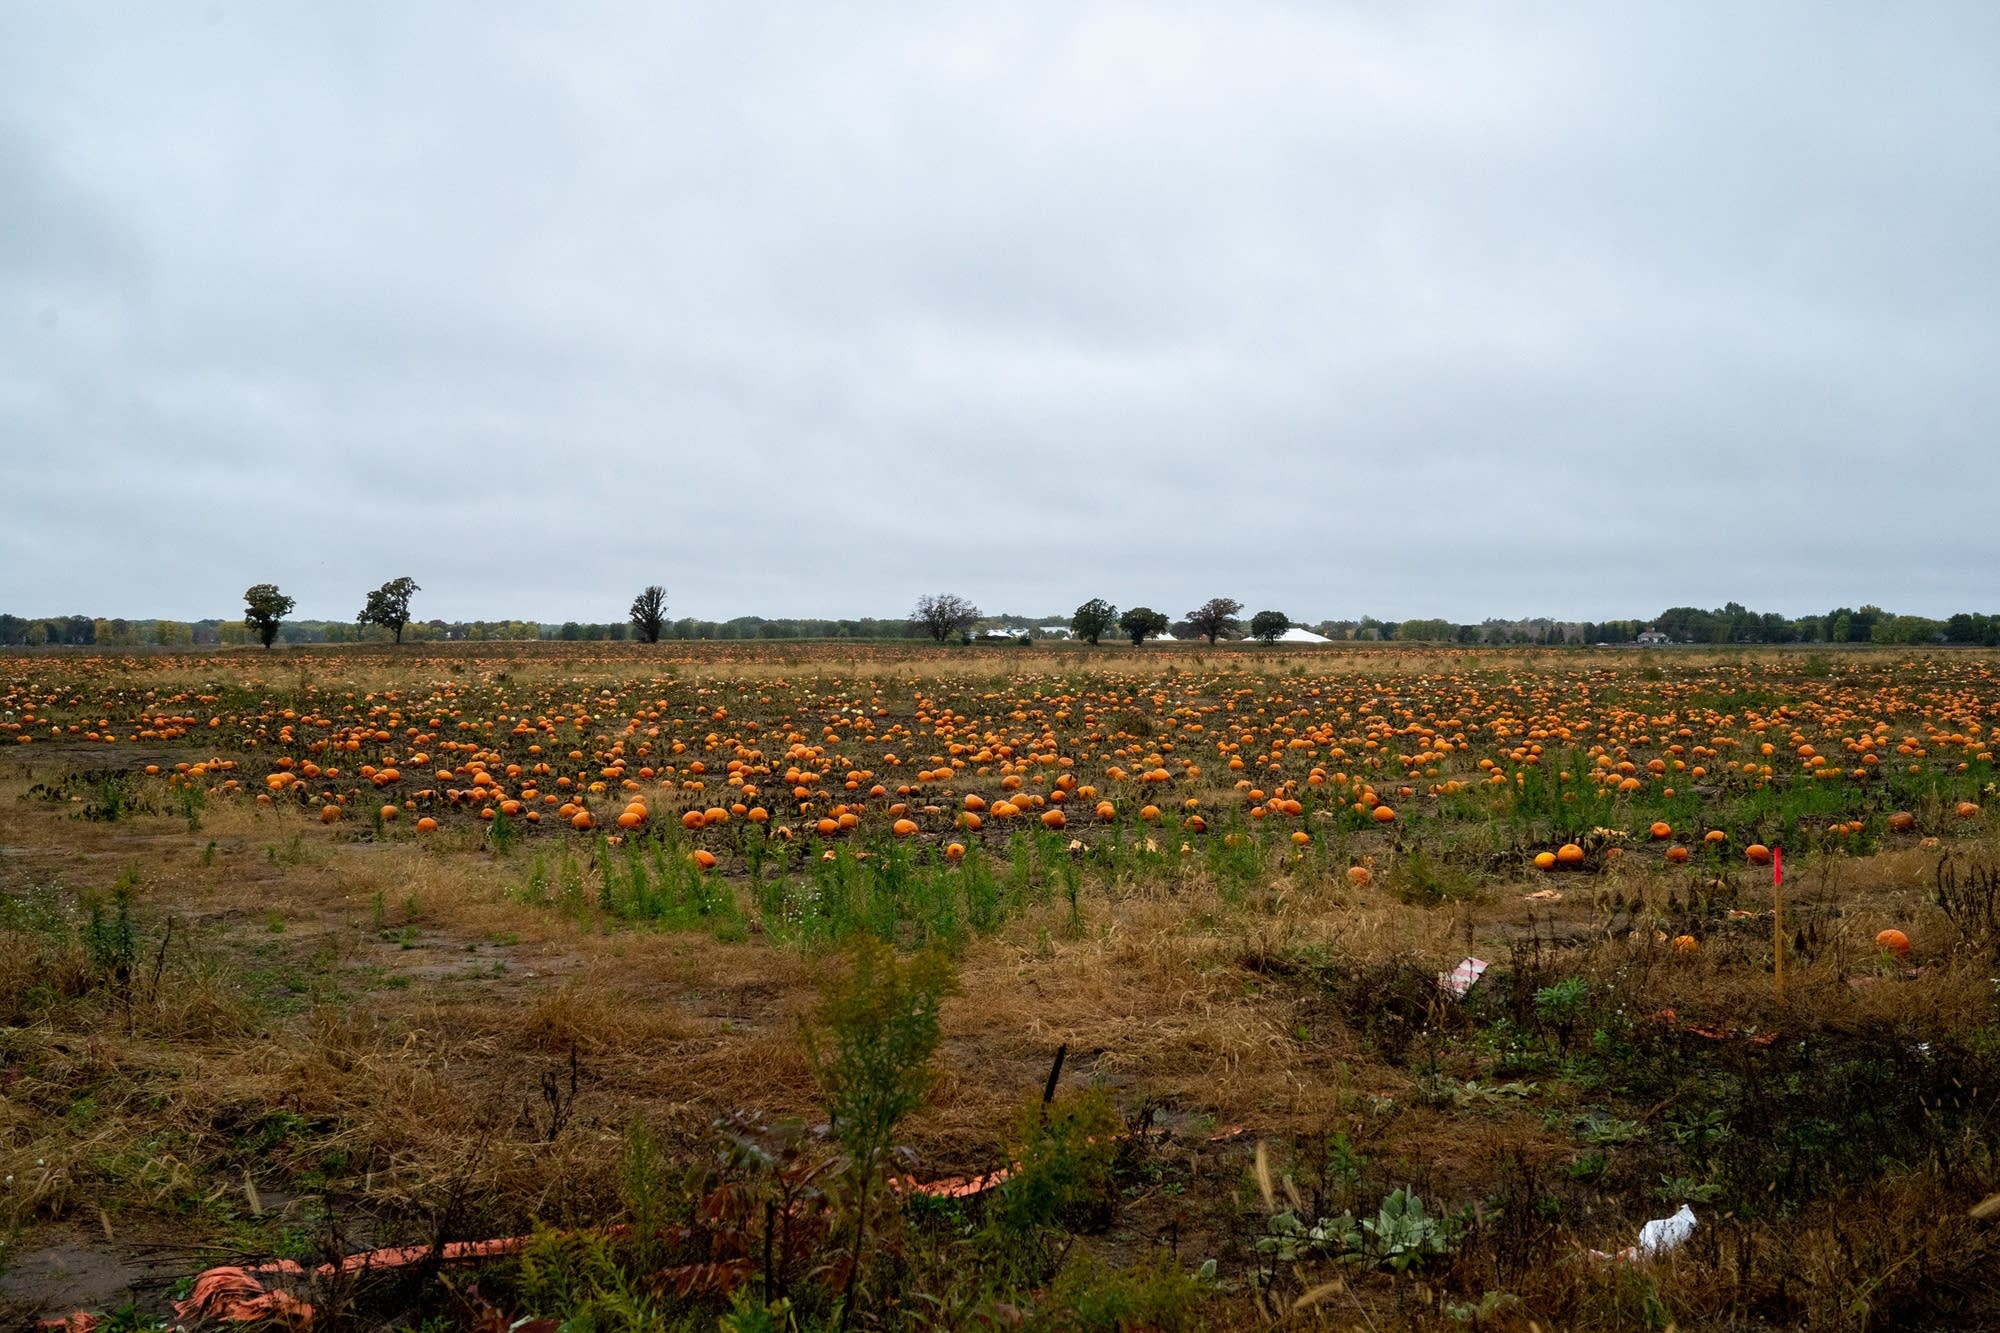 Hundreds of pumpkins sit in a field that is the site of